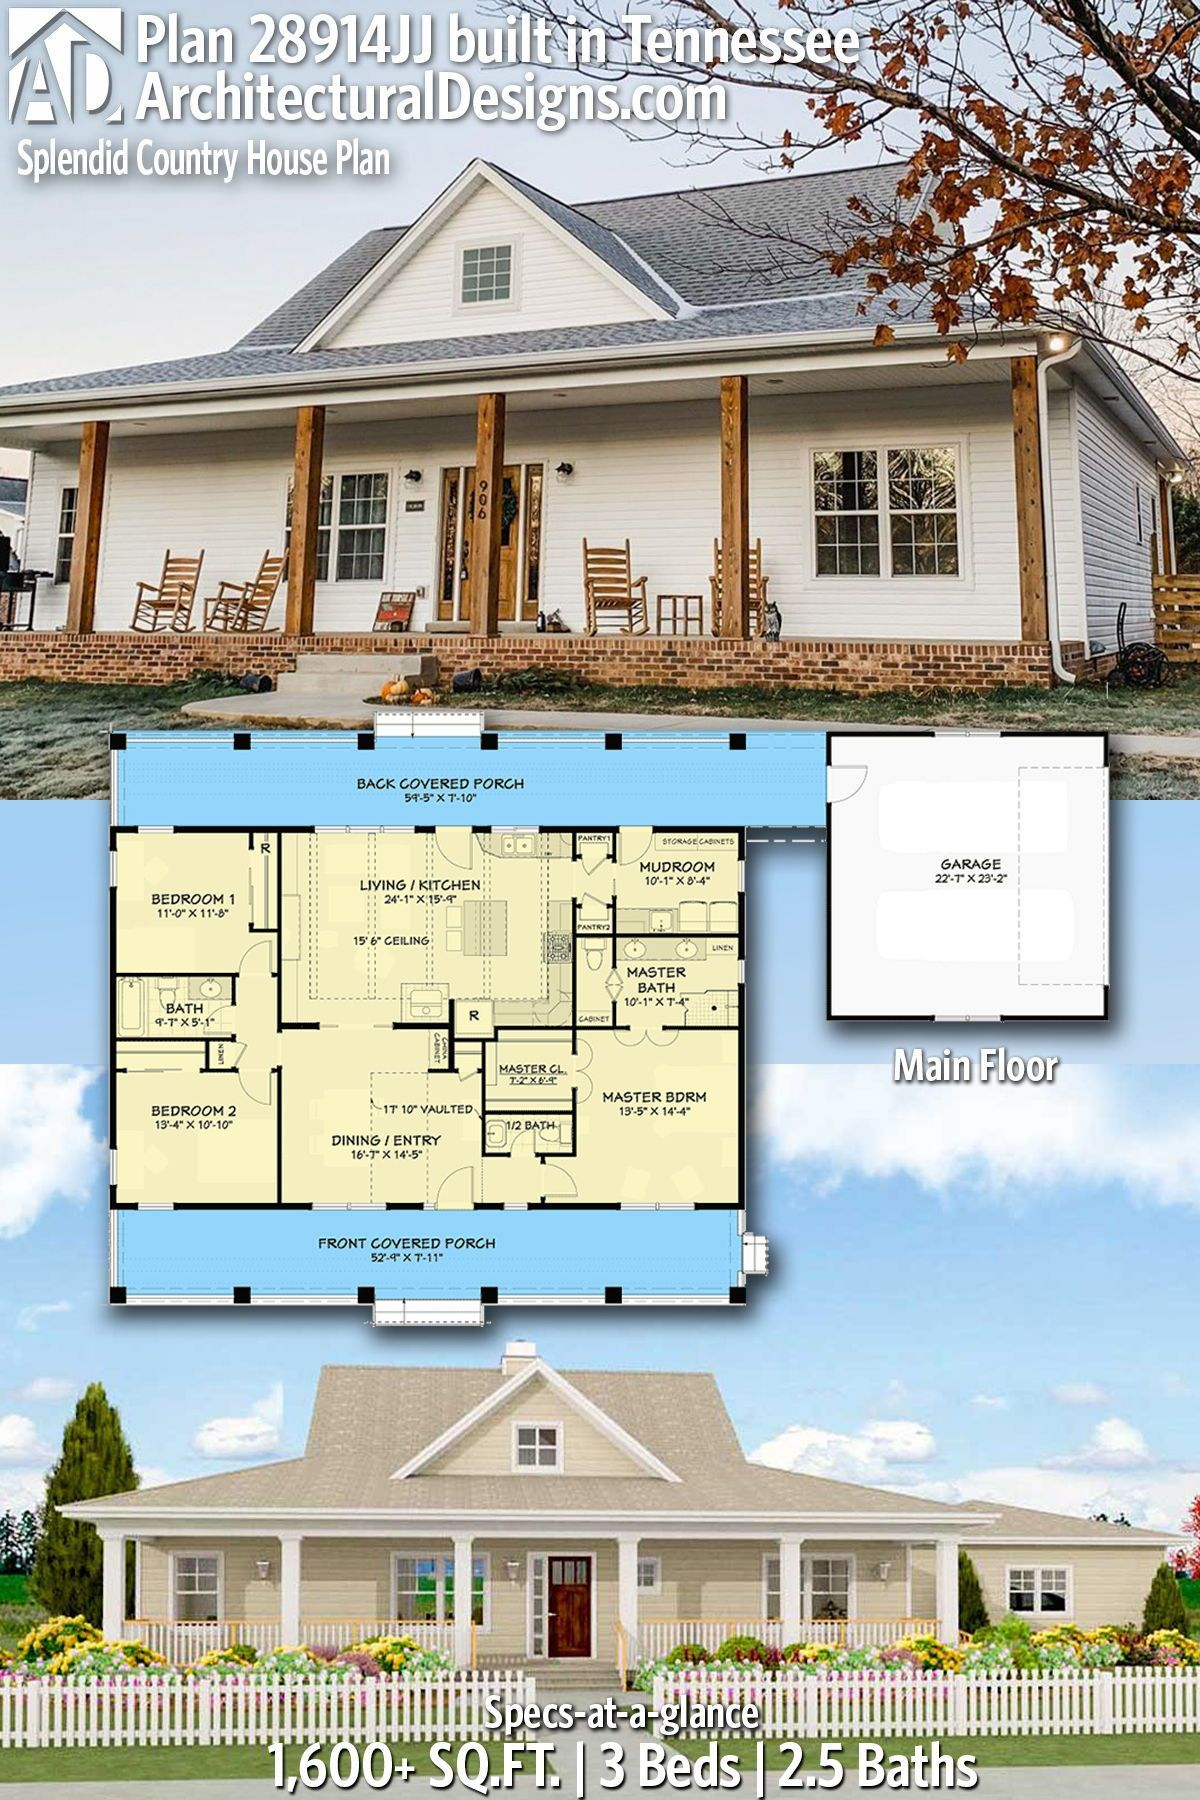 One Story House Plan Farmhouse 28914jj 1600 Sq Ft 3 Bed House Plan Under 2000 Sq Ft In 2020 House Plans Farmhouse Barn House Plans Farmhouse Floor Plans